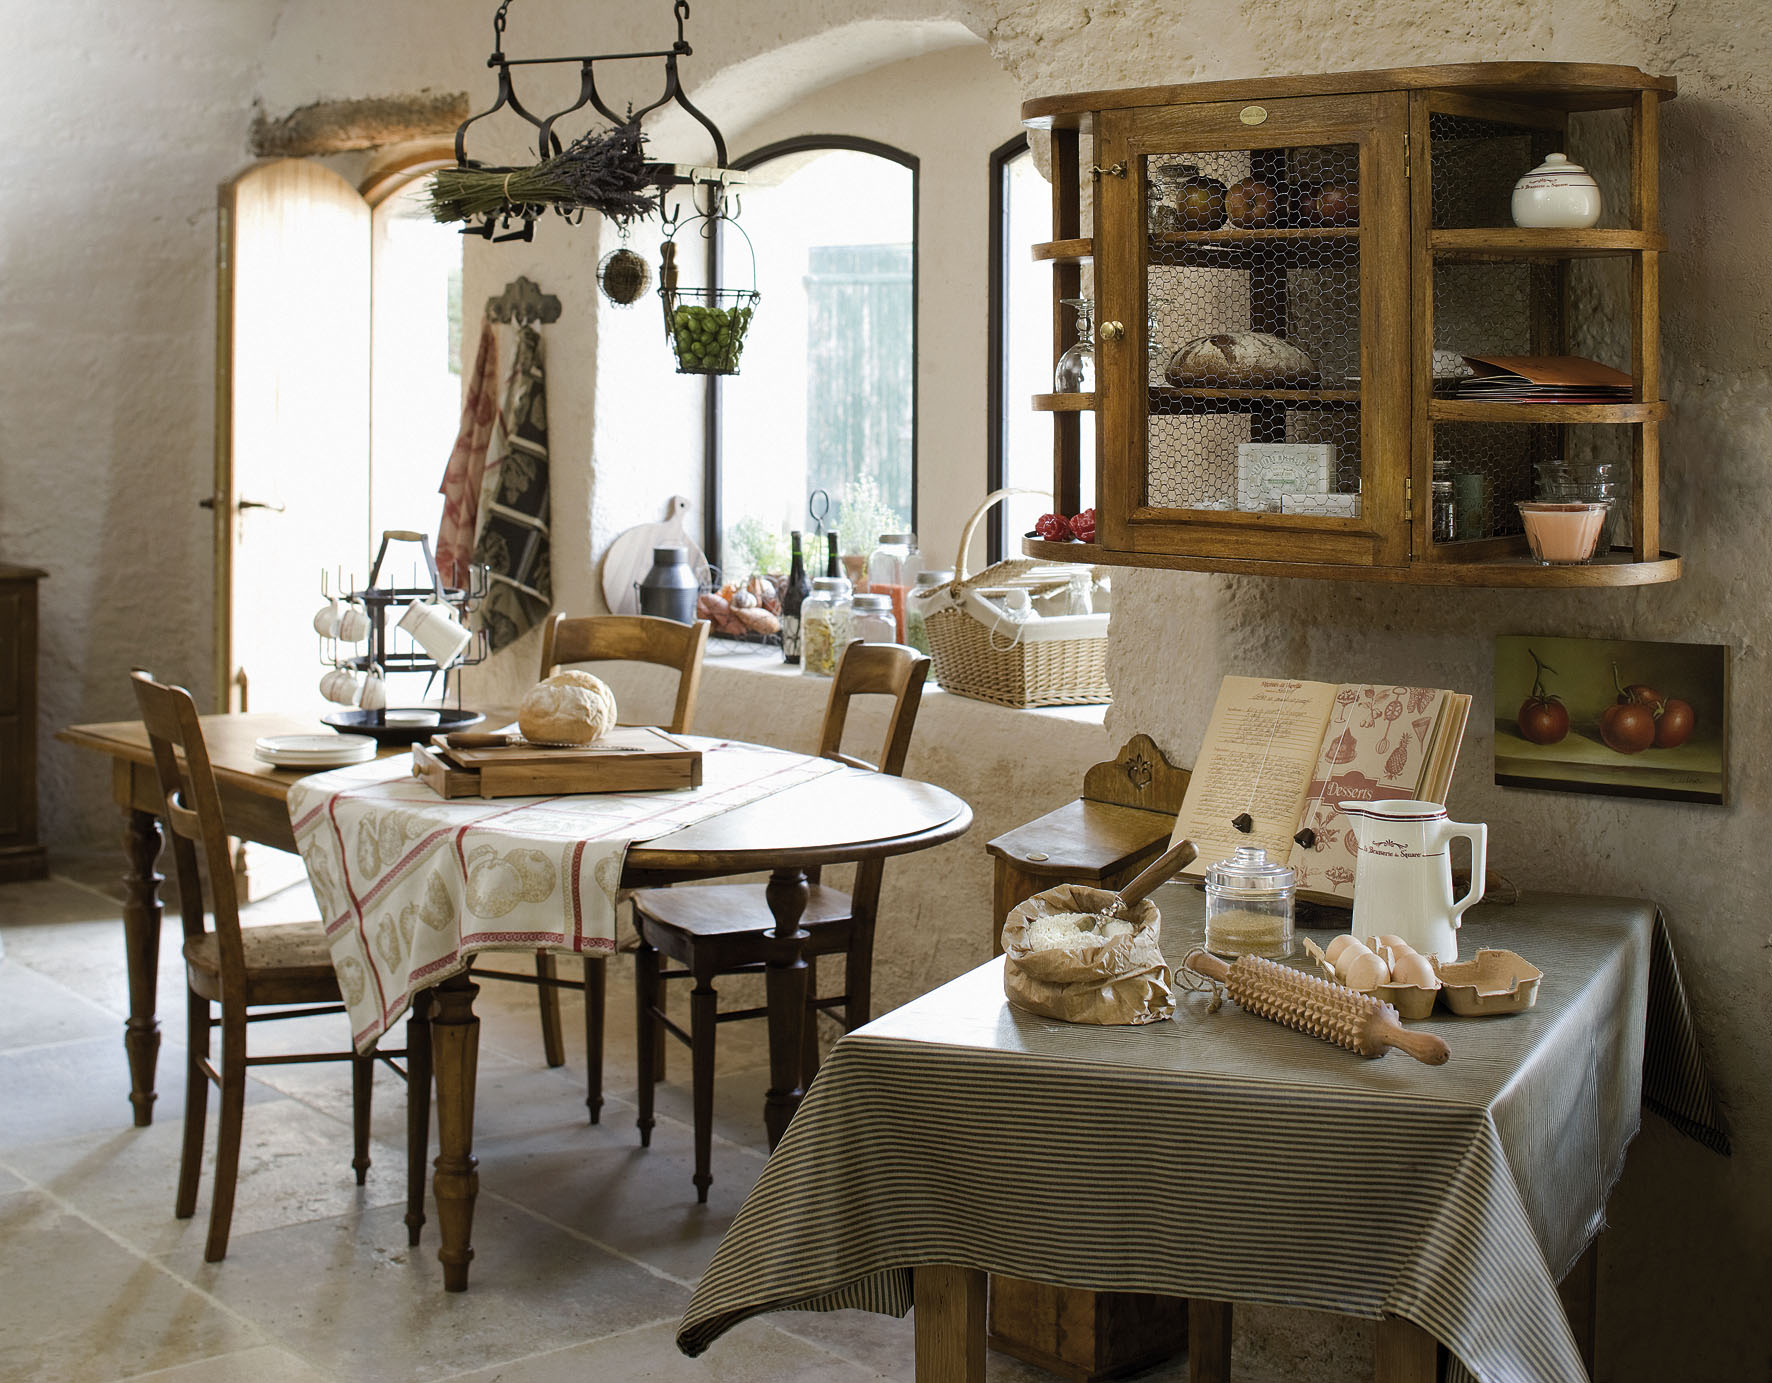 How To Rock The Provence Style Home Ancient Surfaces Purveyor Of Premium Antique Limestone